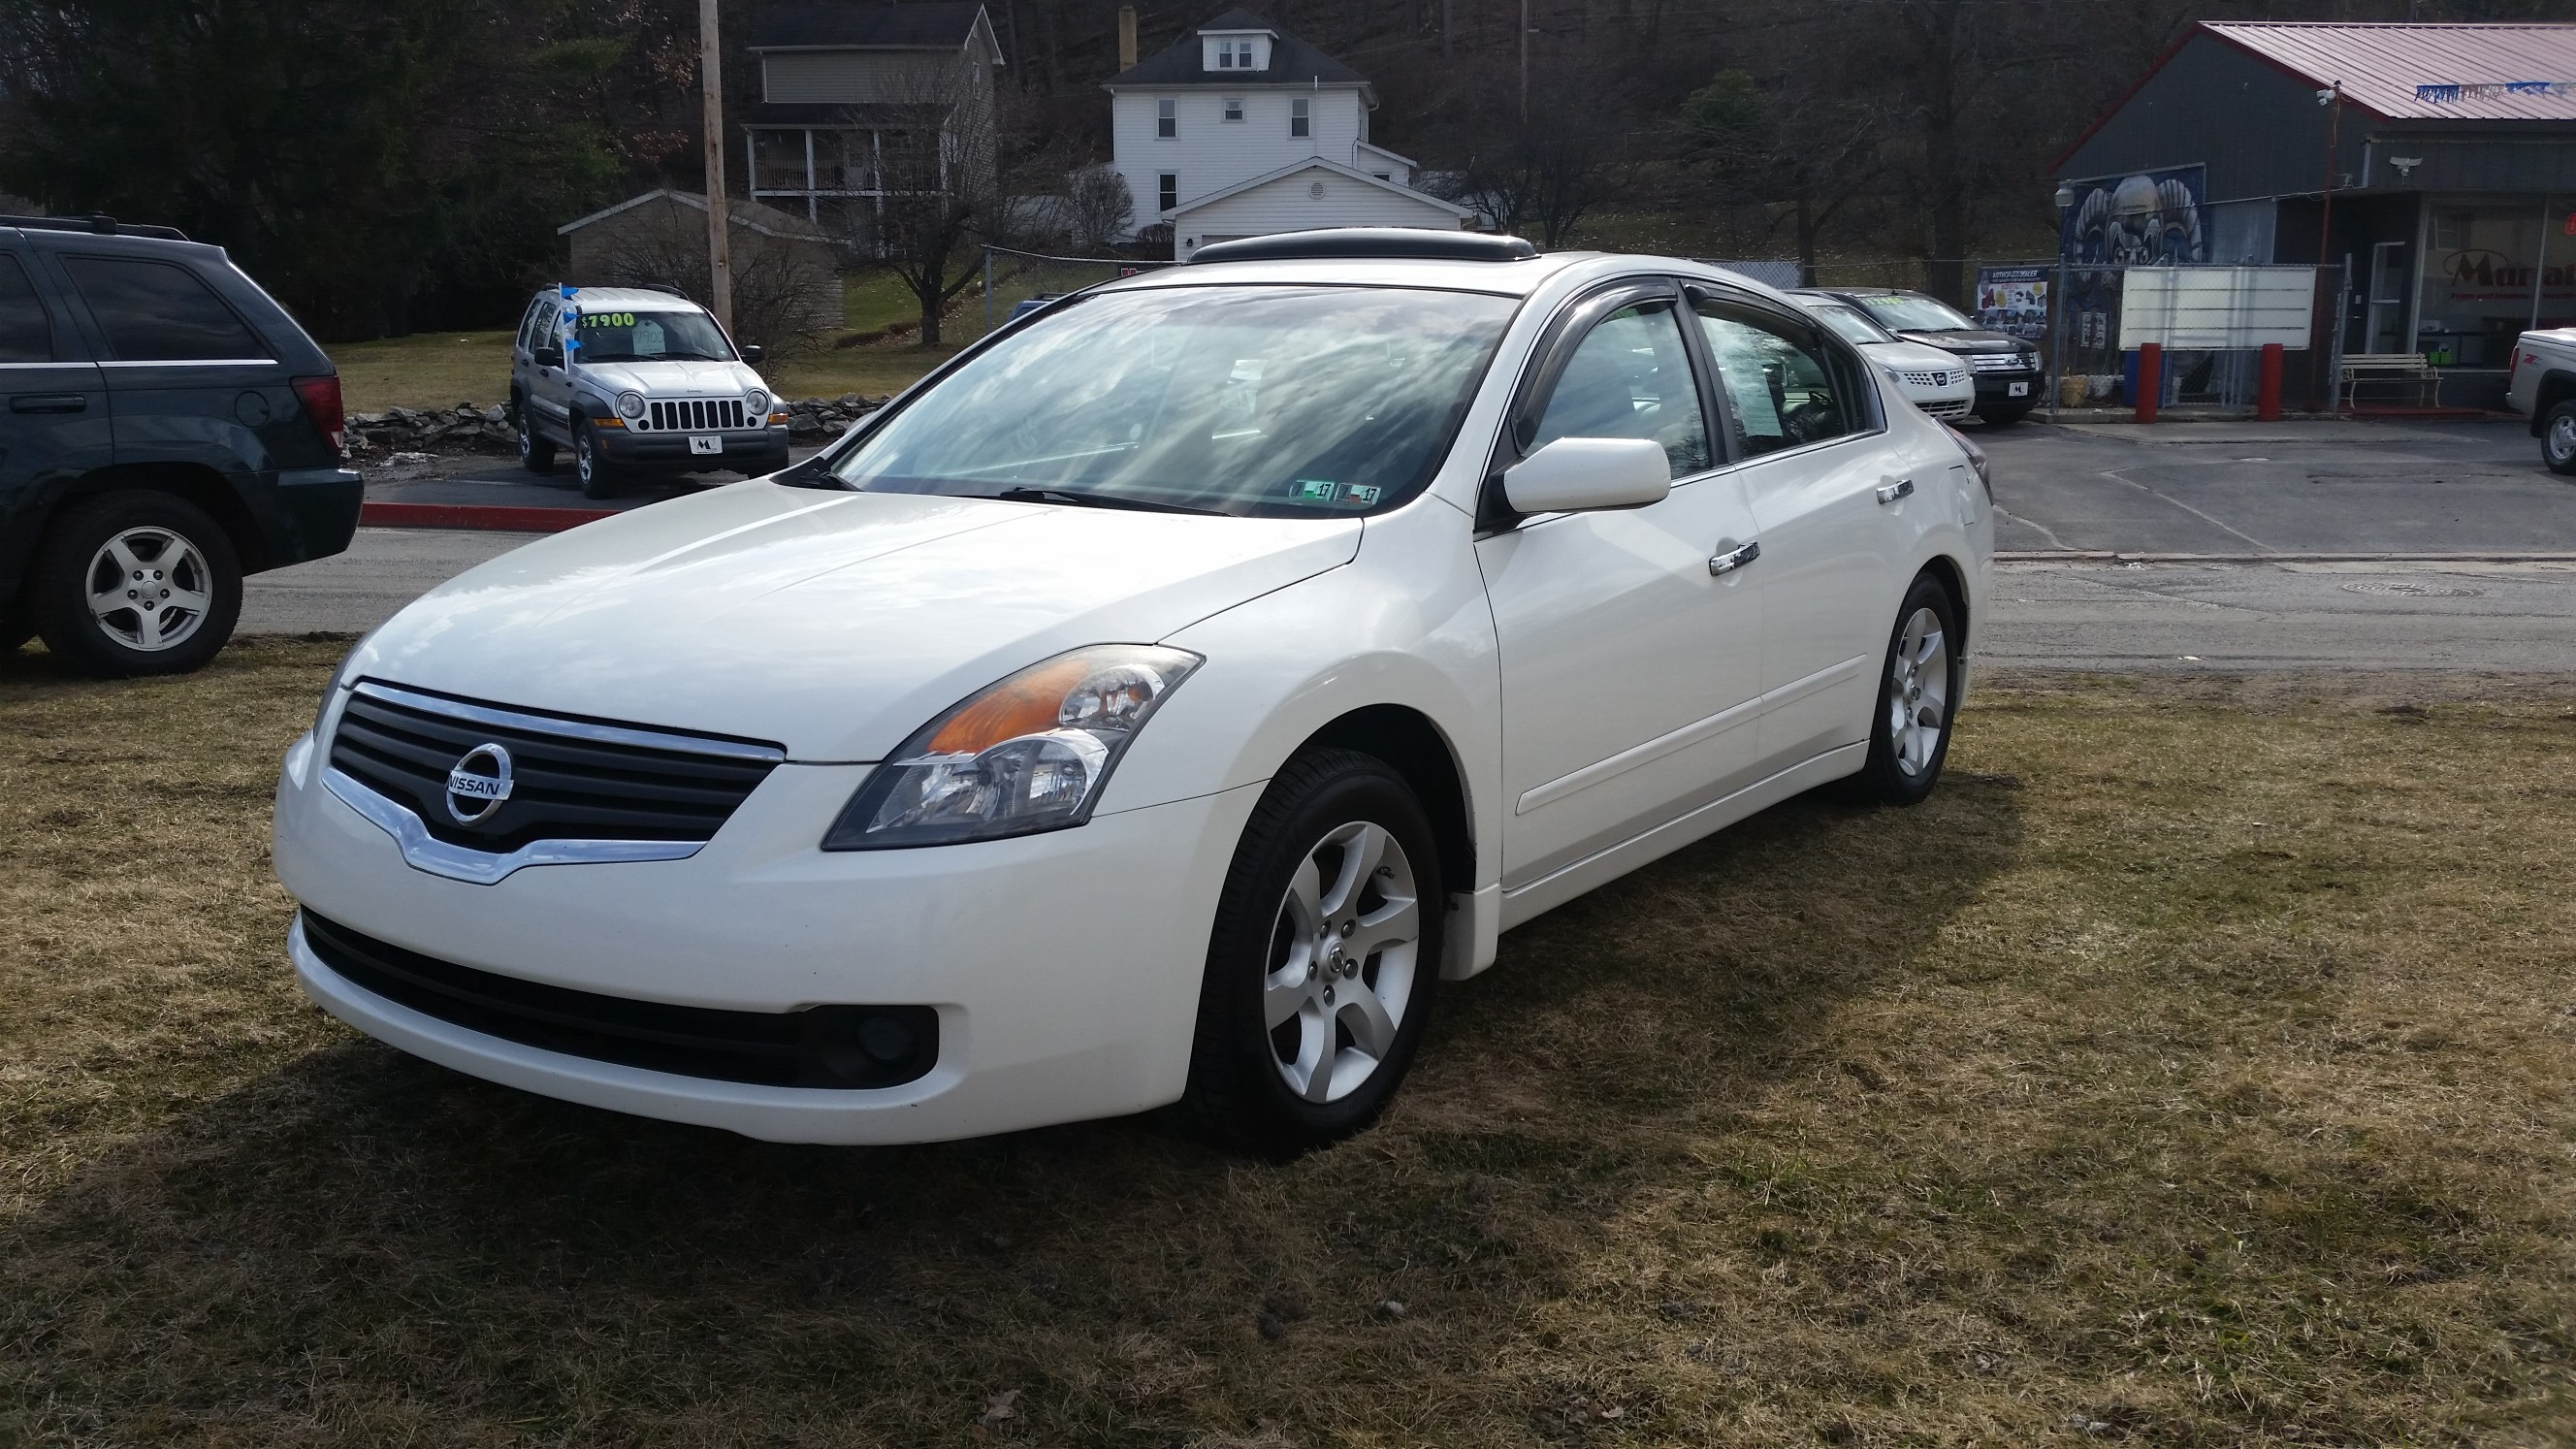 2008 Nissan Altima Sedan Pictures 2018 Cars Models